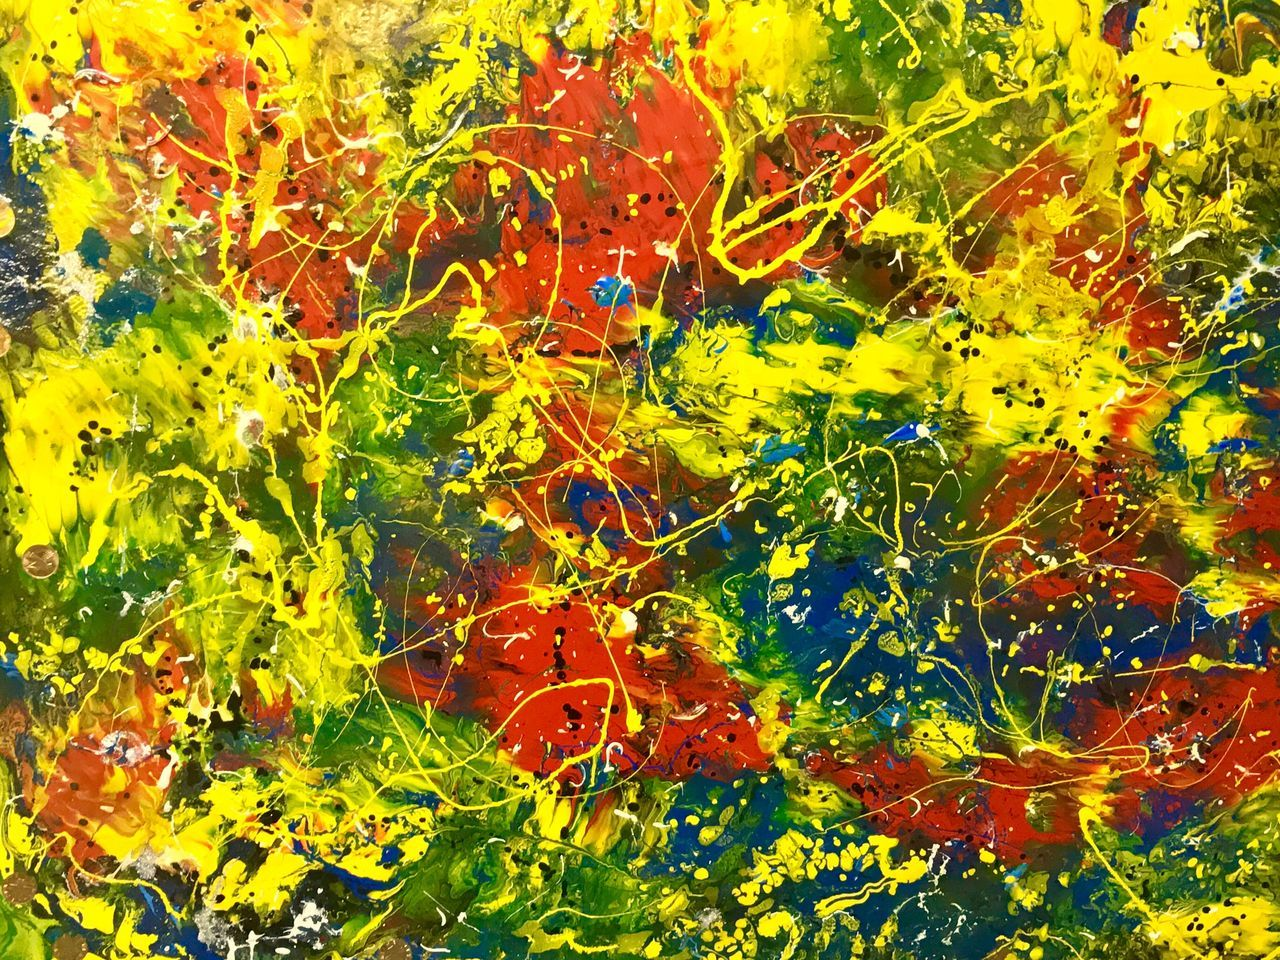 Multi Colored Backgrounds Abstract Close-up Full Frame No People Yellow Day Outdoors Hobbies Hobby Hobbyphotography KLIMPI KLIMPERATOR Klimpi-klimperator